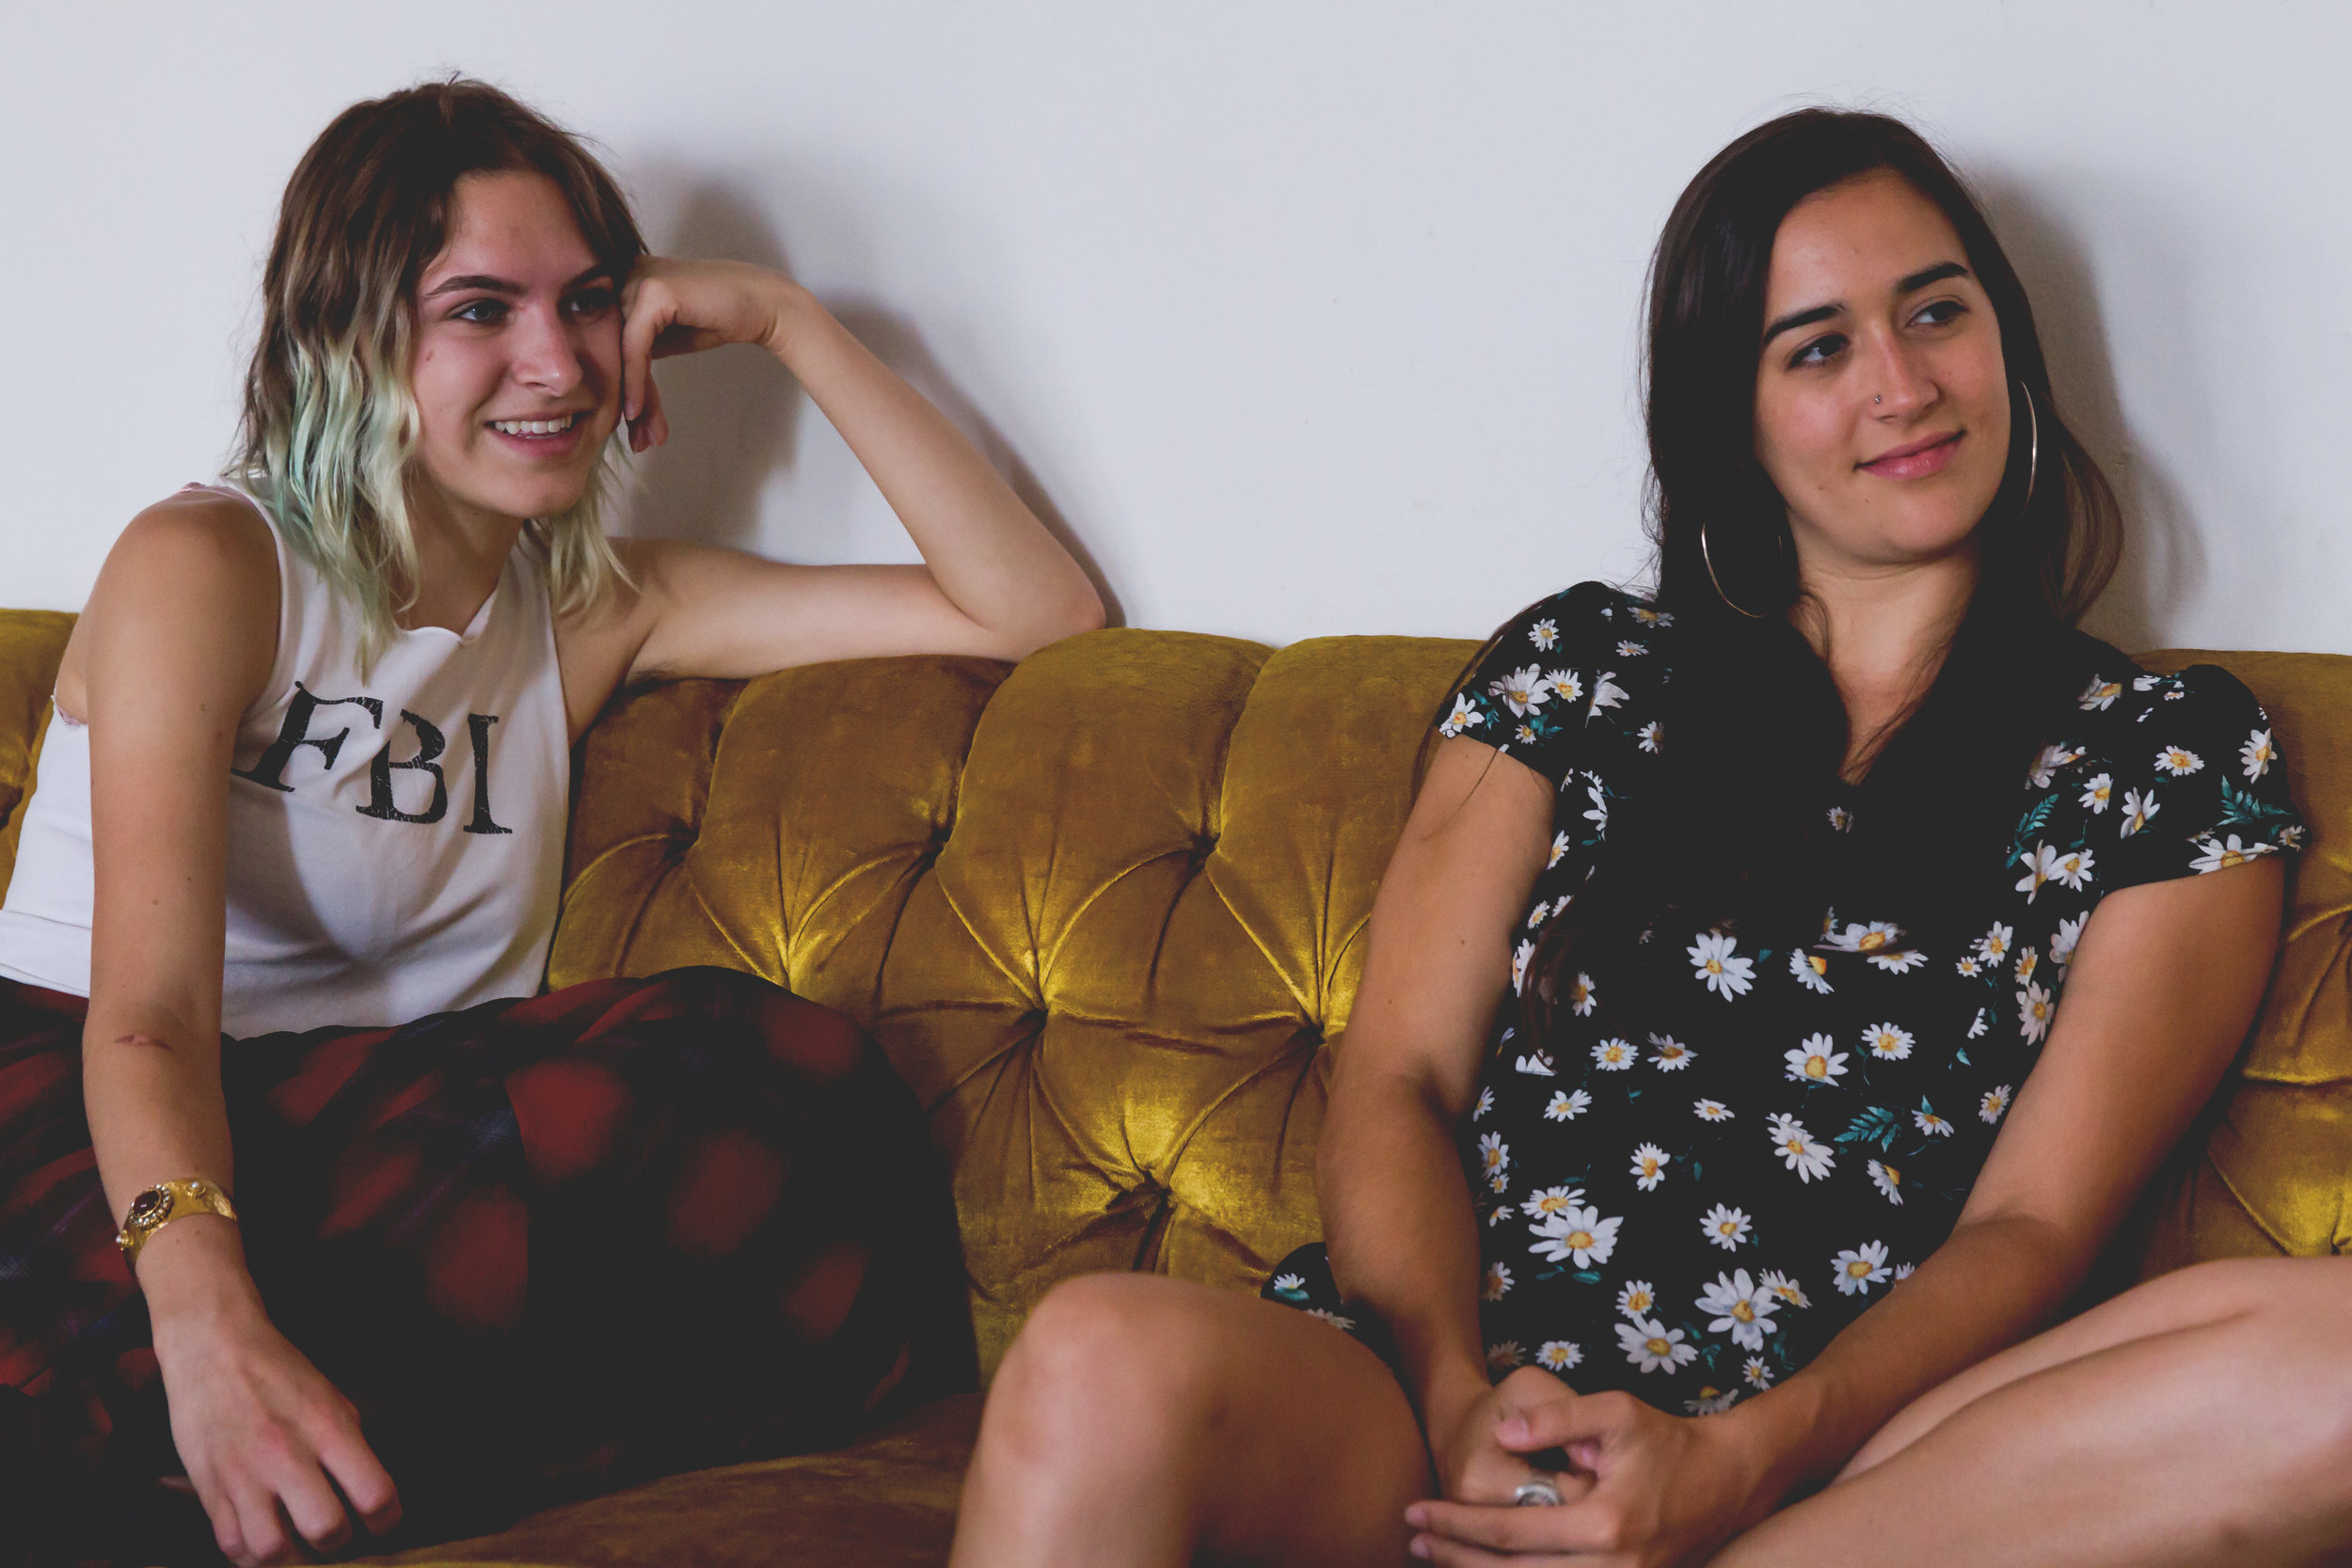 INTERVIEW: Emily Nichols and Catherine Poulos are true professionals!